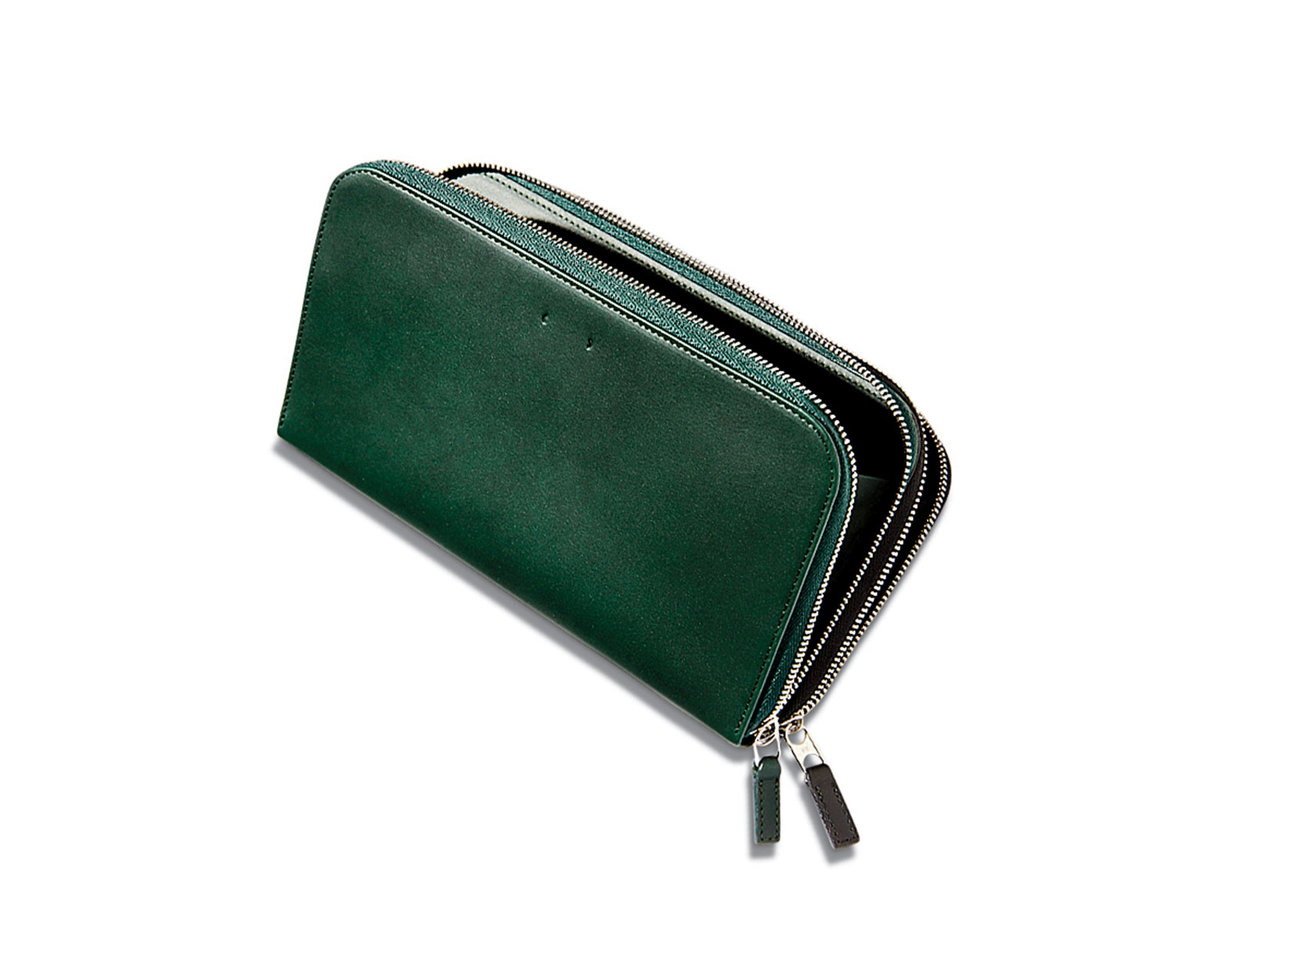 pb0110-wallet-PACKING0816.jpg